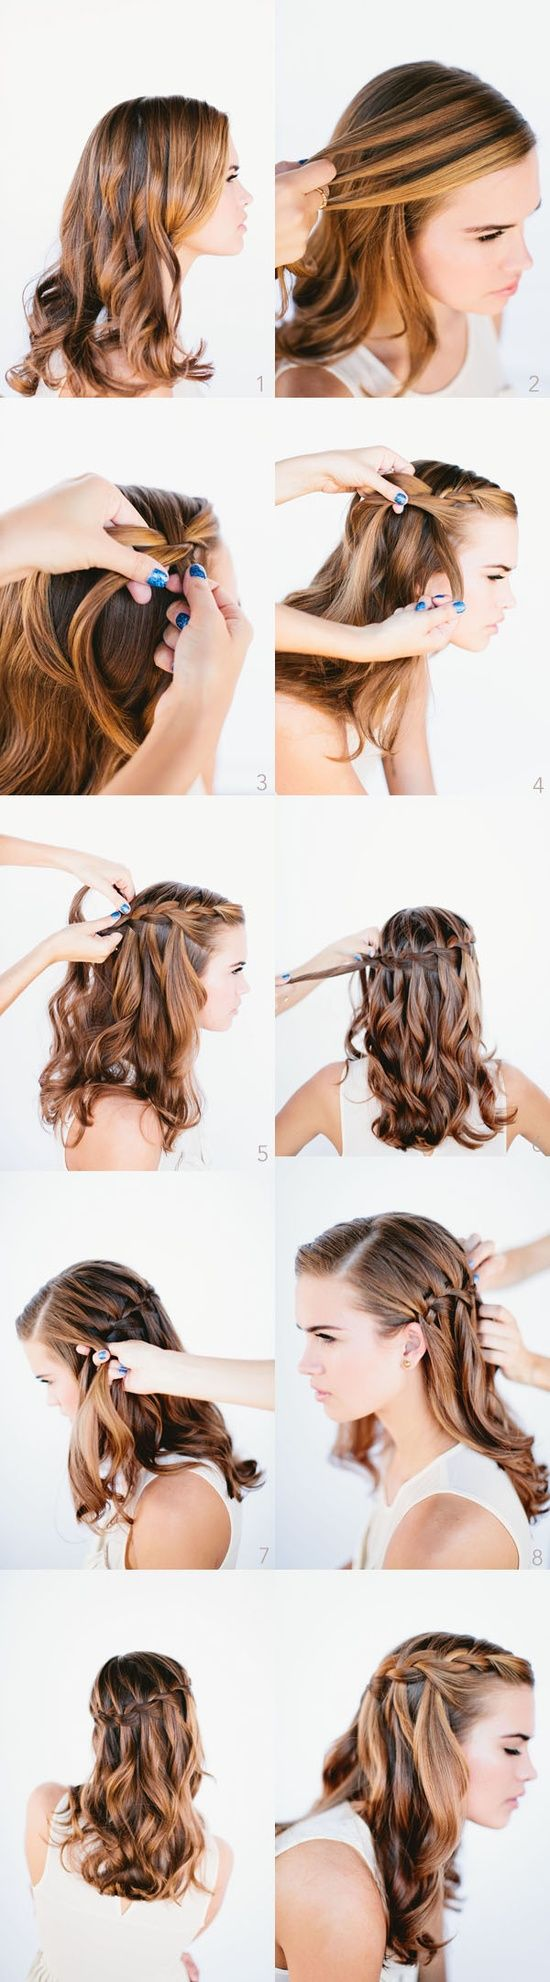 steps to braid, waterfall style...LOVE IT